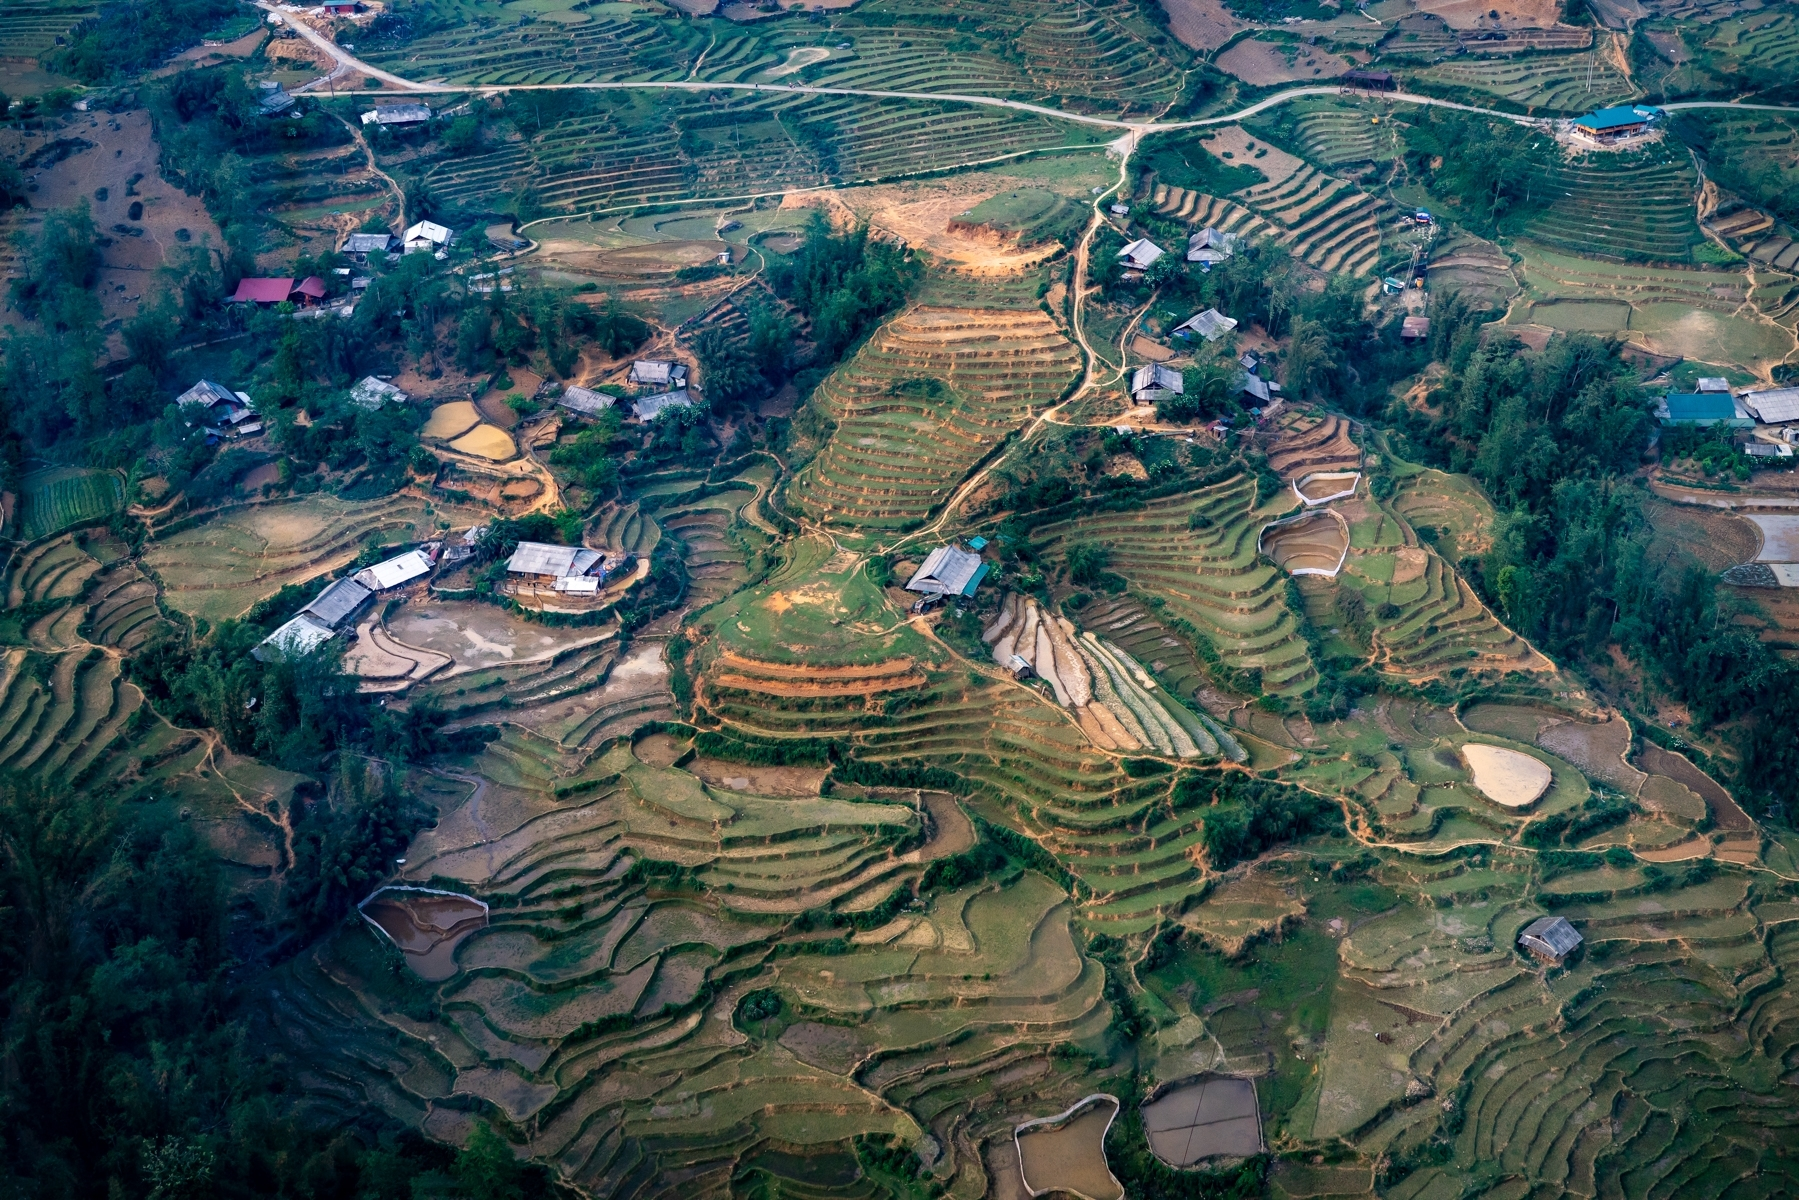 'Terrace Farming in the Mountains of Northwestern Vietnam' (TA 1 Place) by Edward Nowak - SC